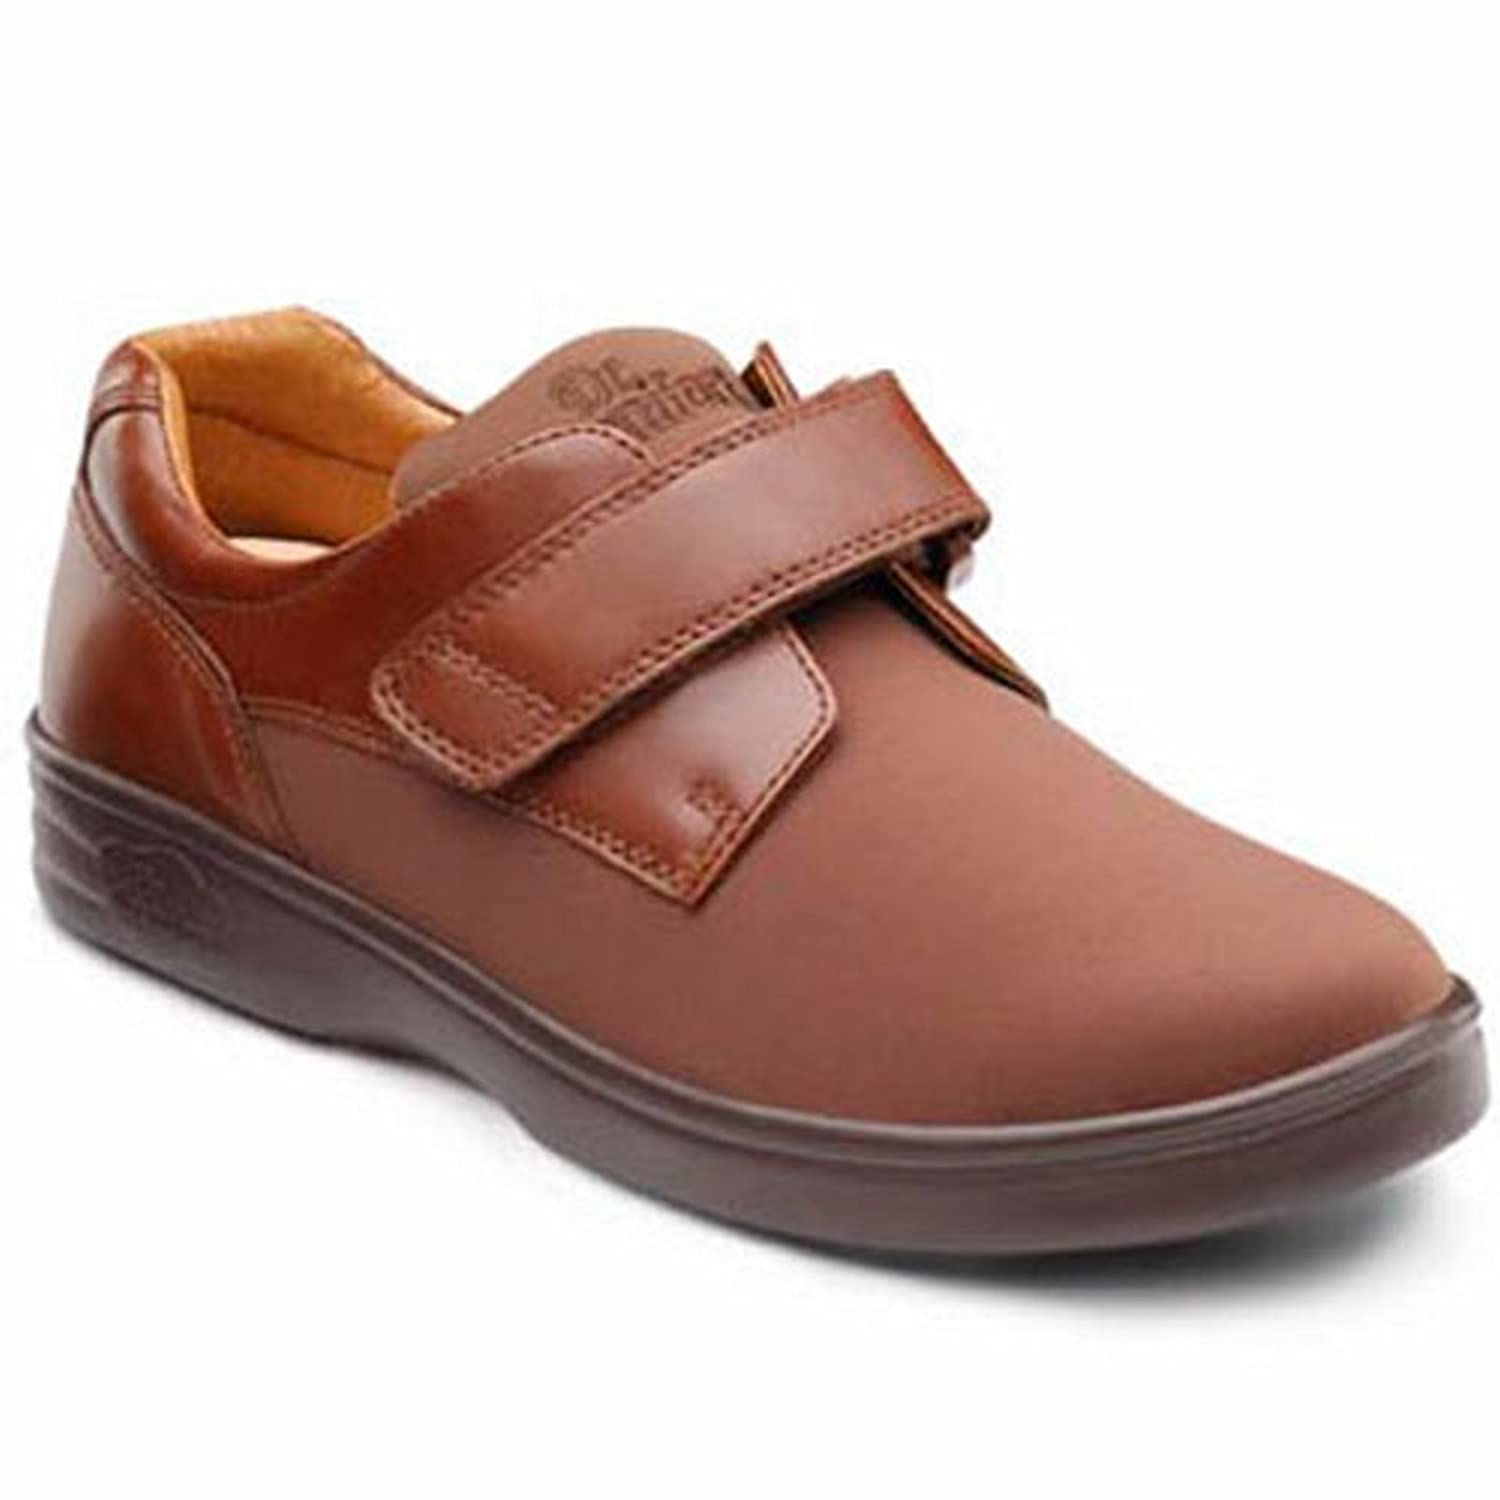 Dr. Comfort Annie Womens Casual Shoe B00IO7YVOW -6.5 Medium (A-B) Acorn Velcro US Woman|Acorn